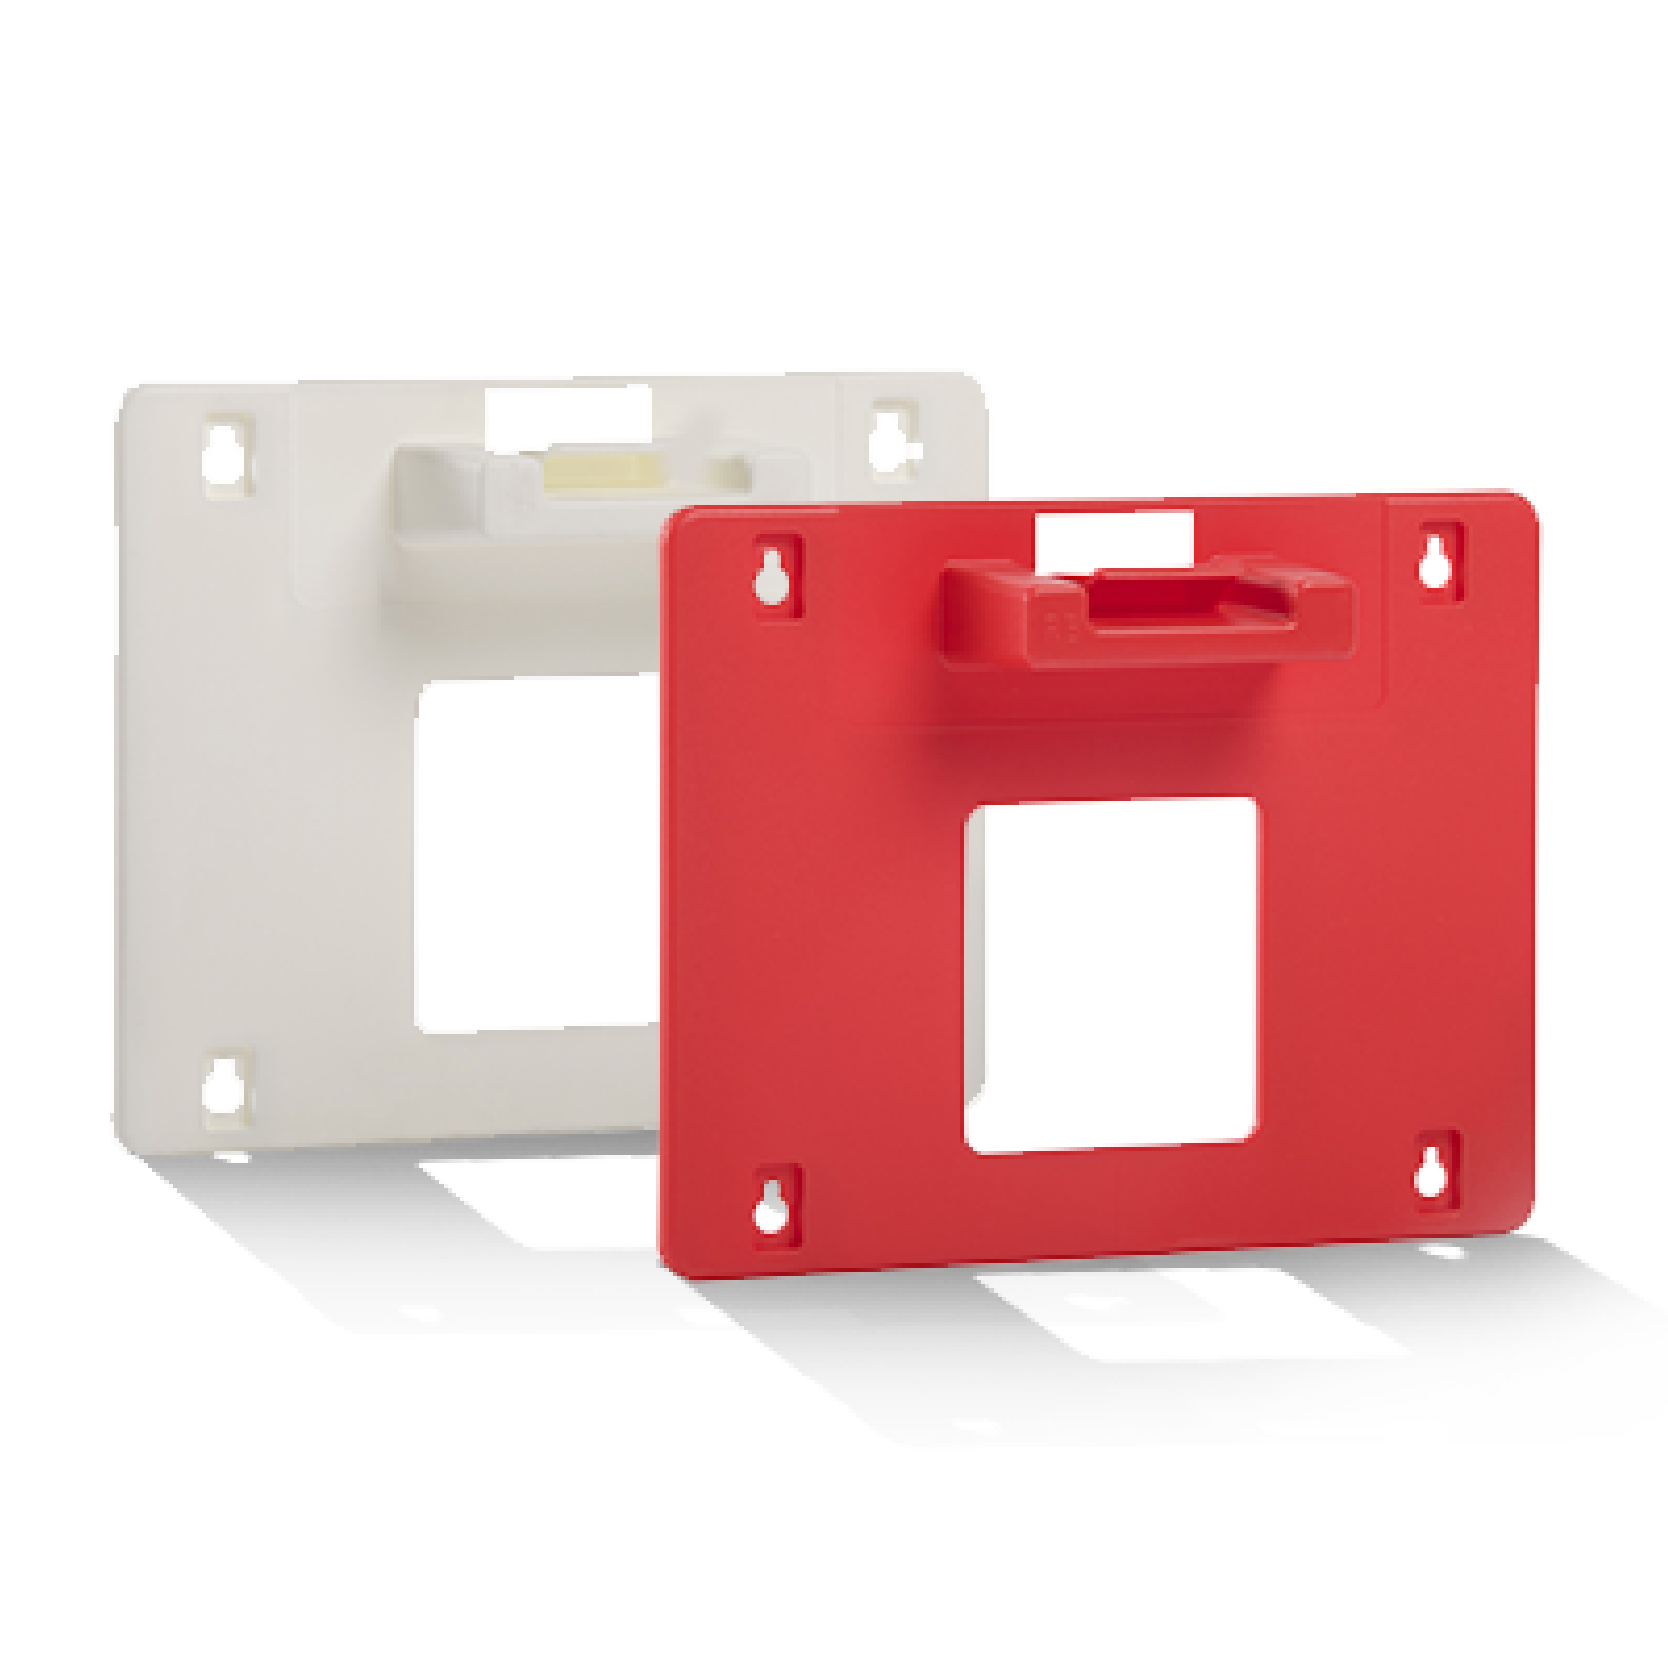 GAGGIONE eplasticase supports muraux mallettes -technical cases wall brackets